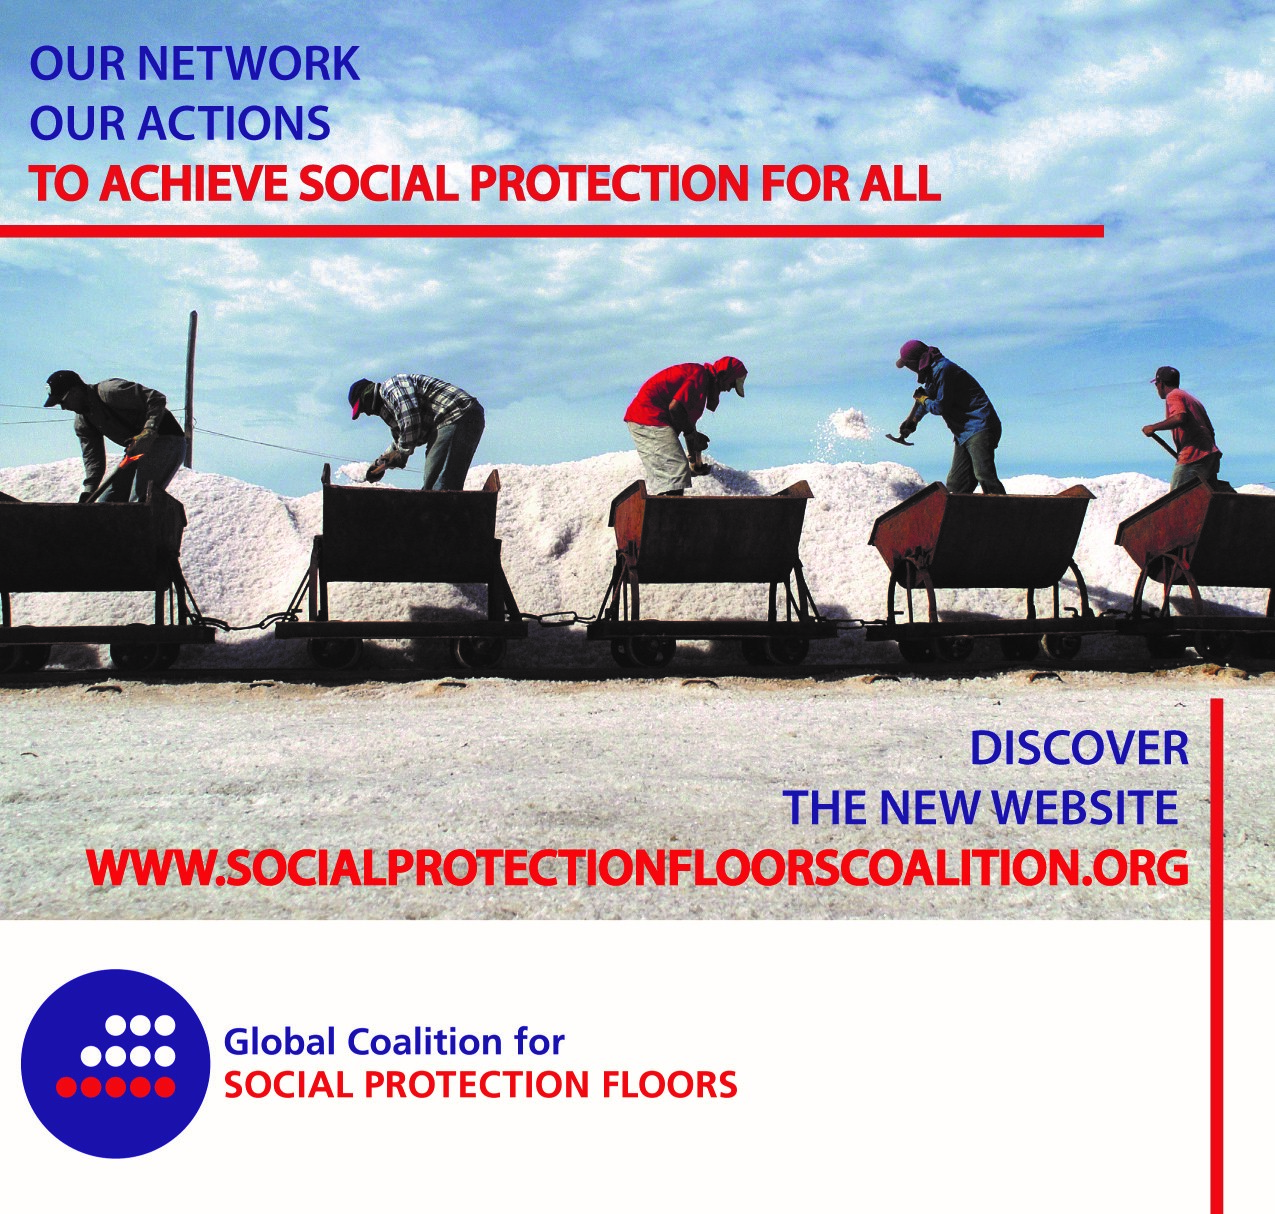 Global Coalition for Social Protection Floors